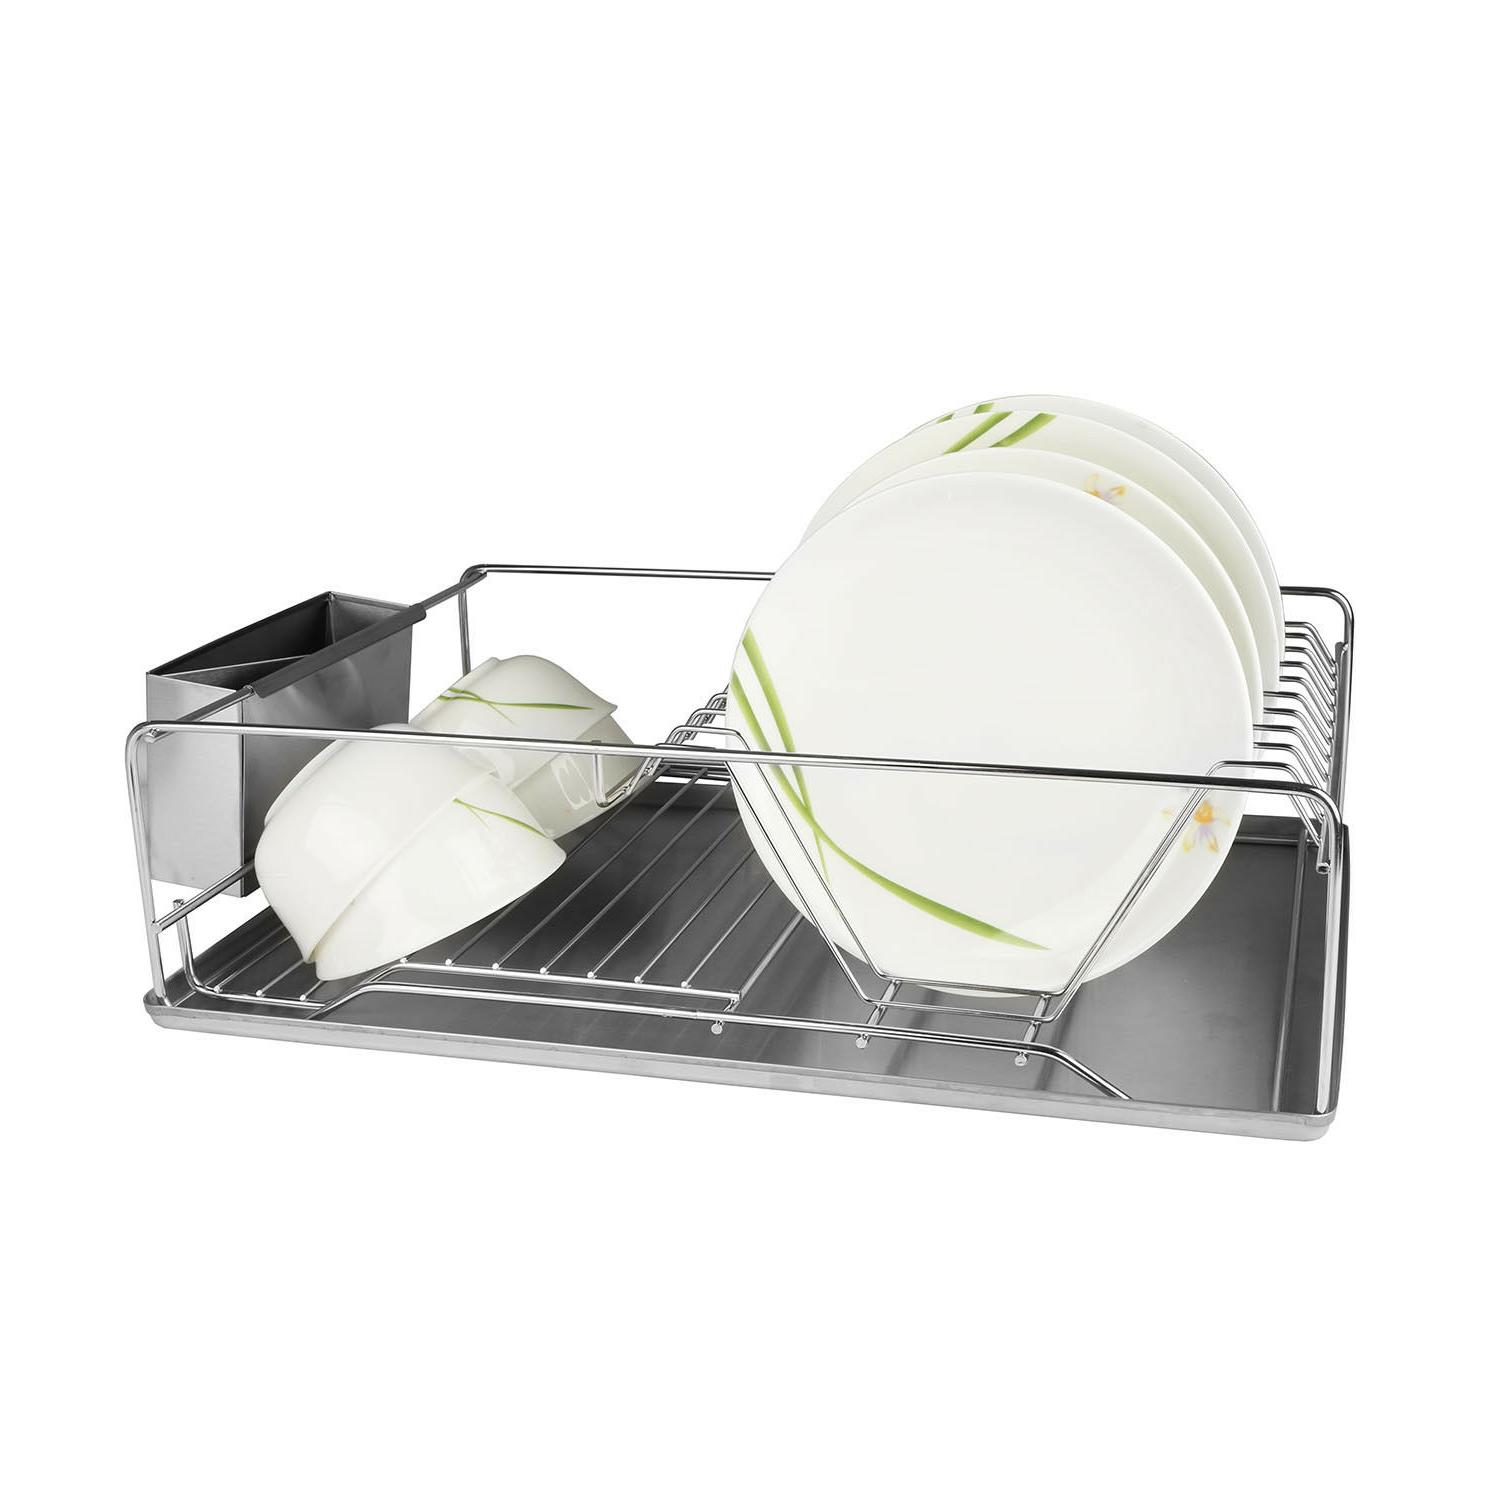 Stainless Steel Drying Rack Drainer Tray Multi-function